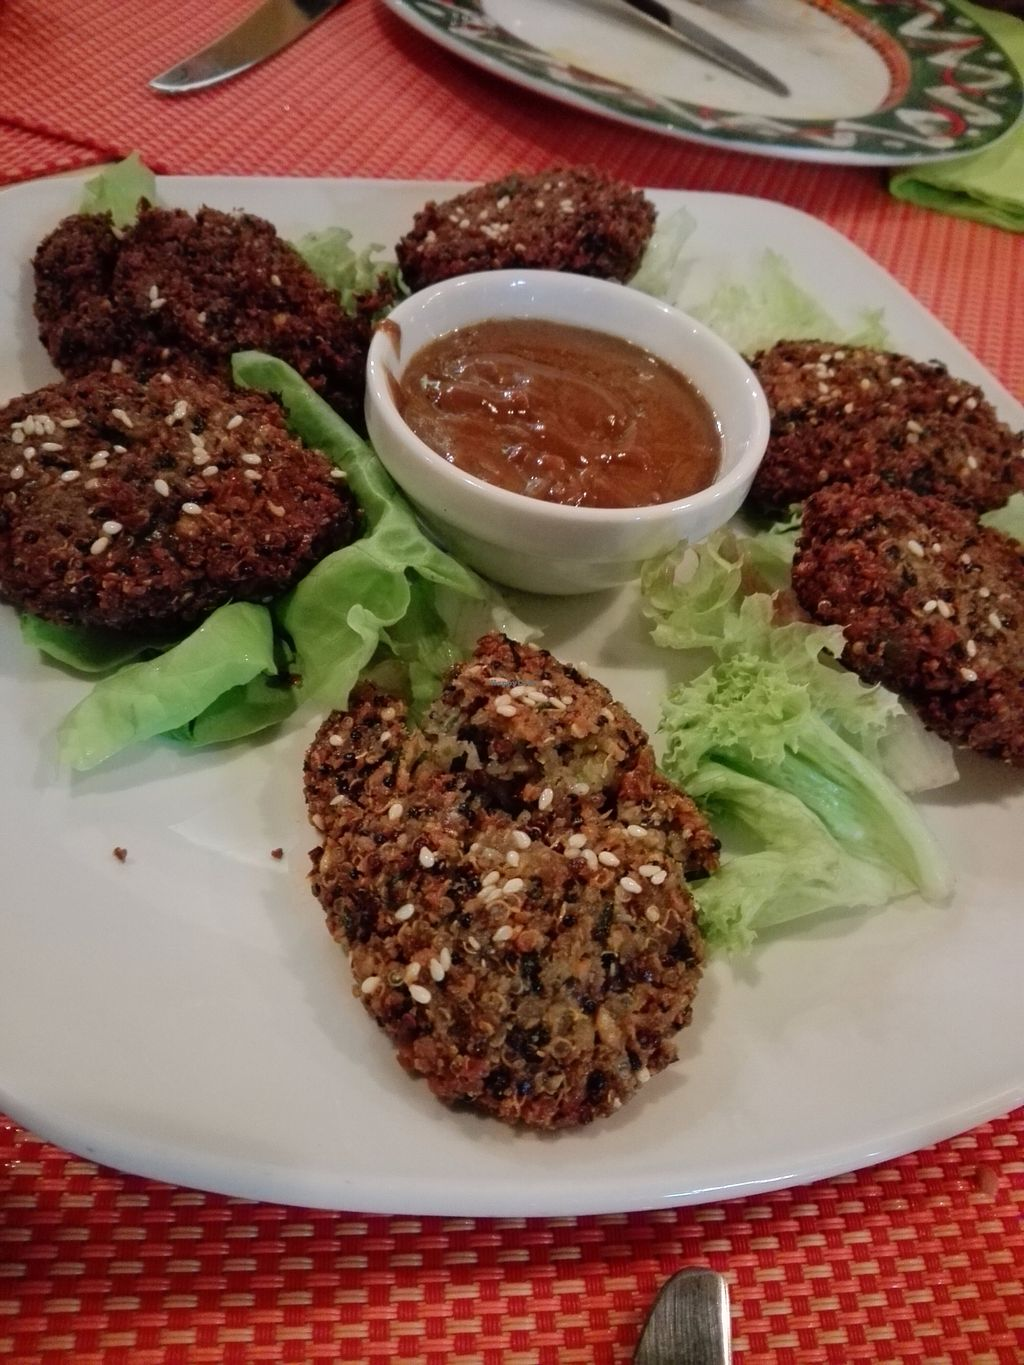 """Photo of Aztec  by <a href=""""/members/profile/ElisaGR"""">ElisaGR</a> <br/>Balls of quinoa, sesame, flax seed and beans with sauce from coconut milk and peanut butter <br/> October 31, 2017  - <a href='/contact/abuse/image/95599/320571'>Report</a>"""